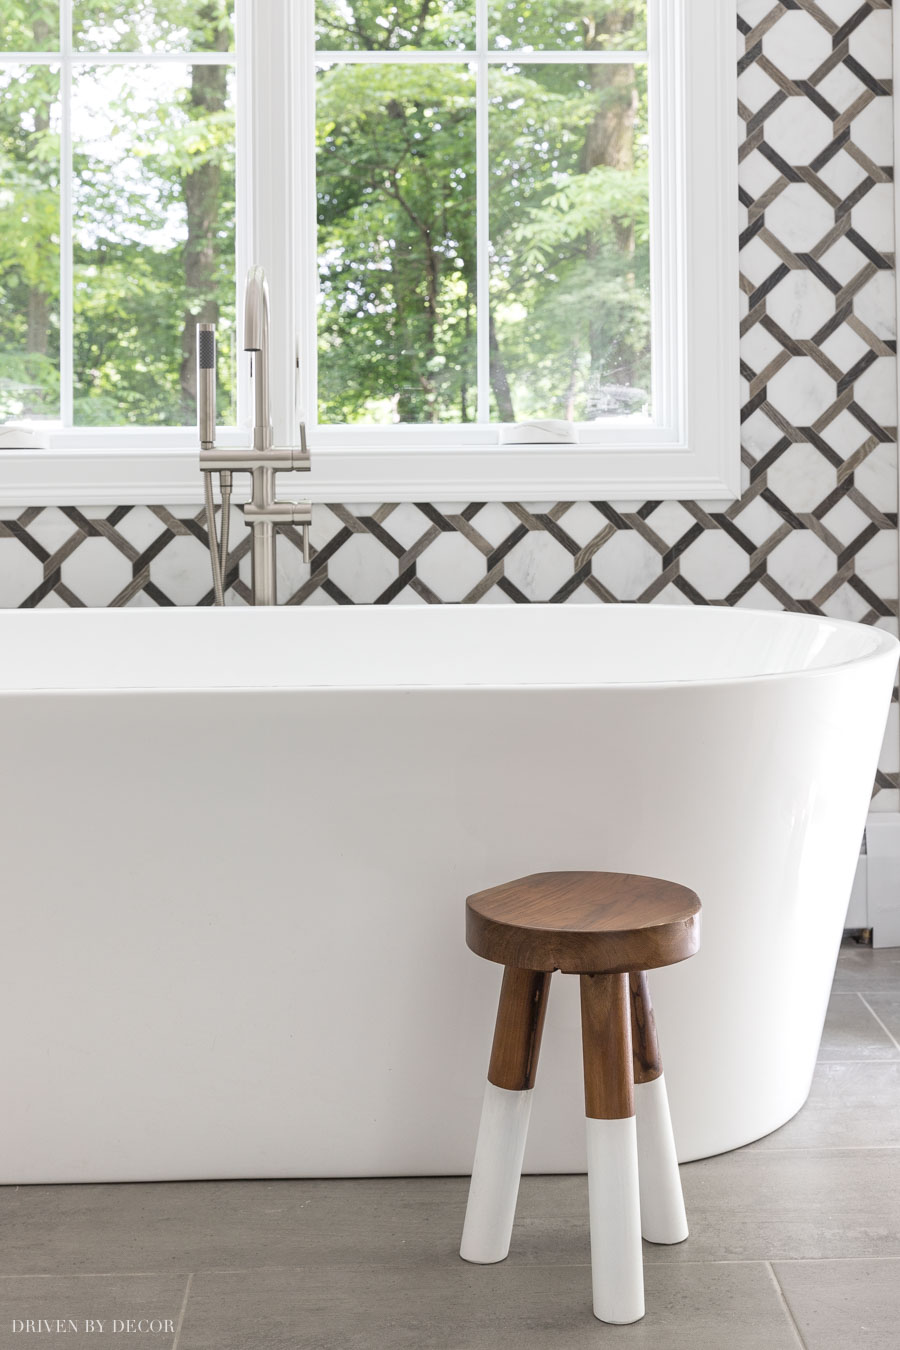 Love this darling wood stool next to her bathtub! So many other great bathroom decor ideas in this post too!